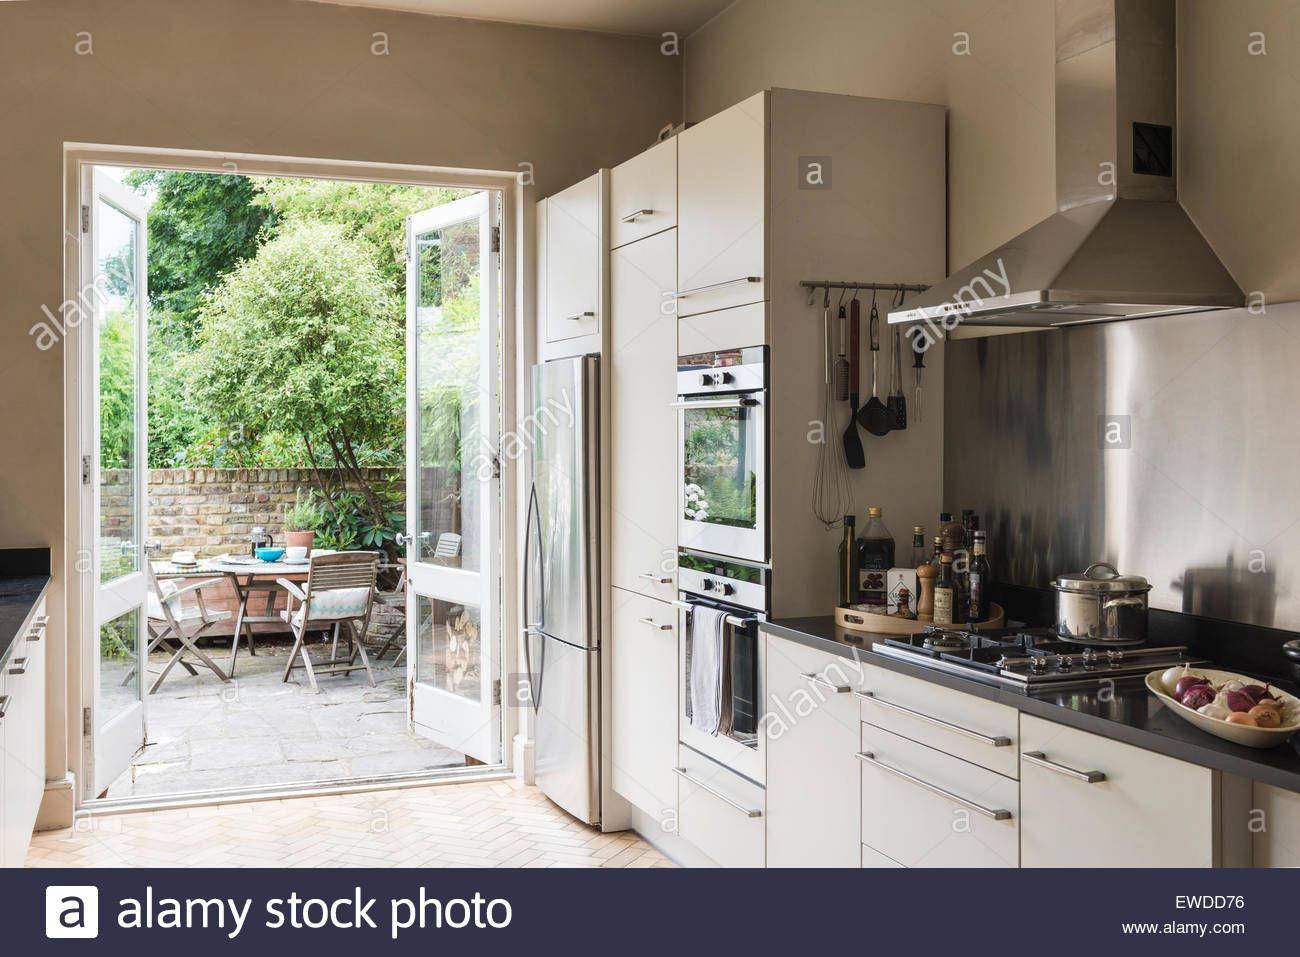 kitchens with french windows - Google Search